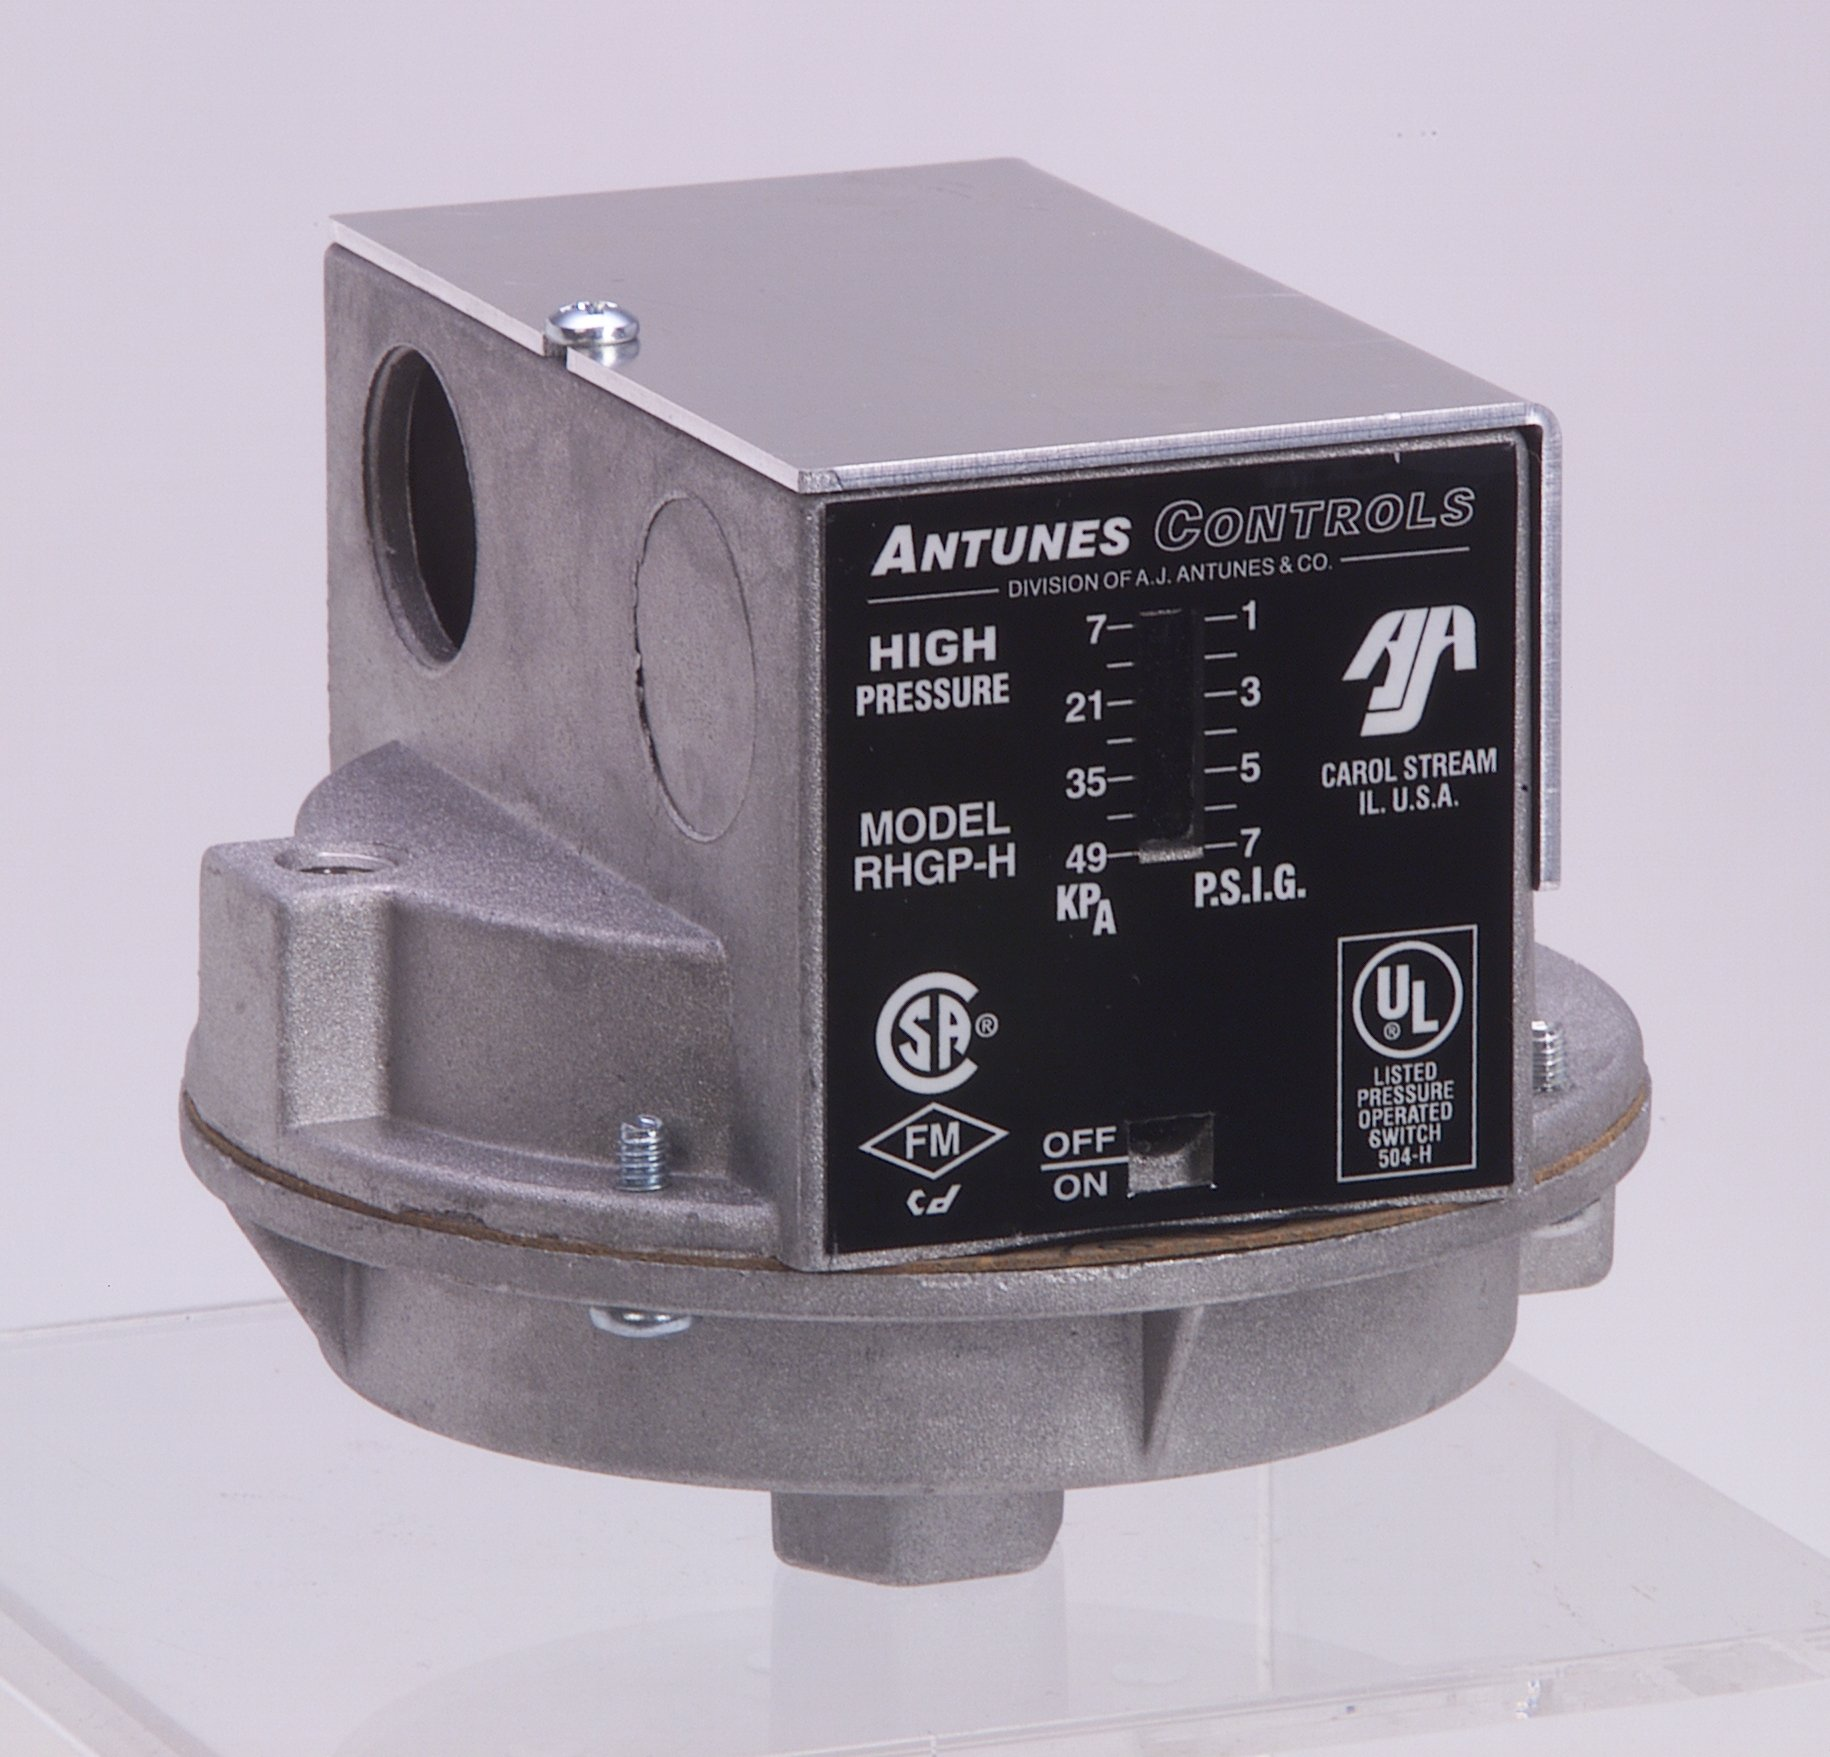 Antunes Controls RLGP-H(6-15psi) Models RHGP-H and RLGP-H Single Gas Switches